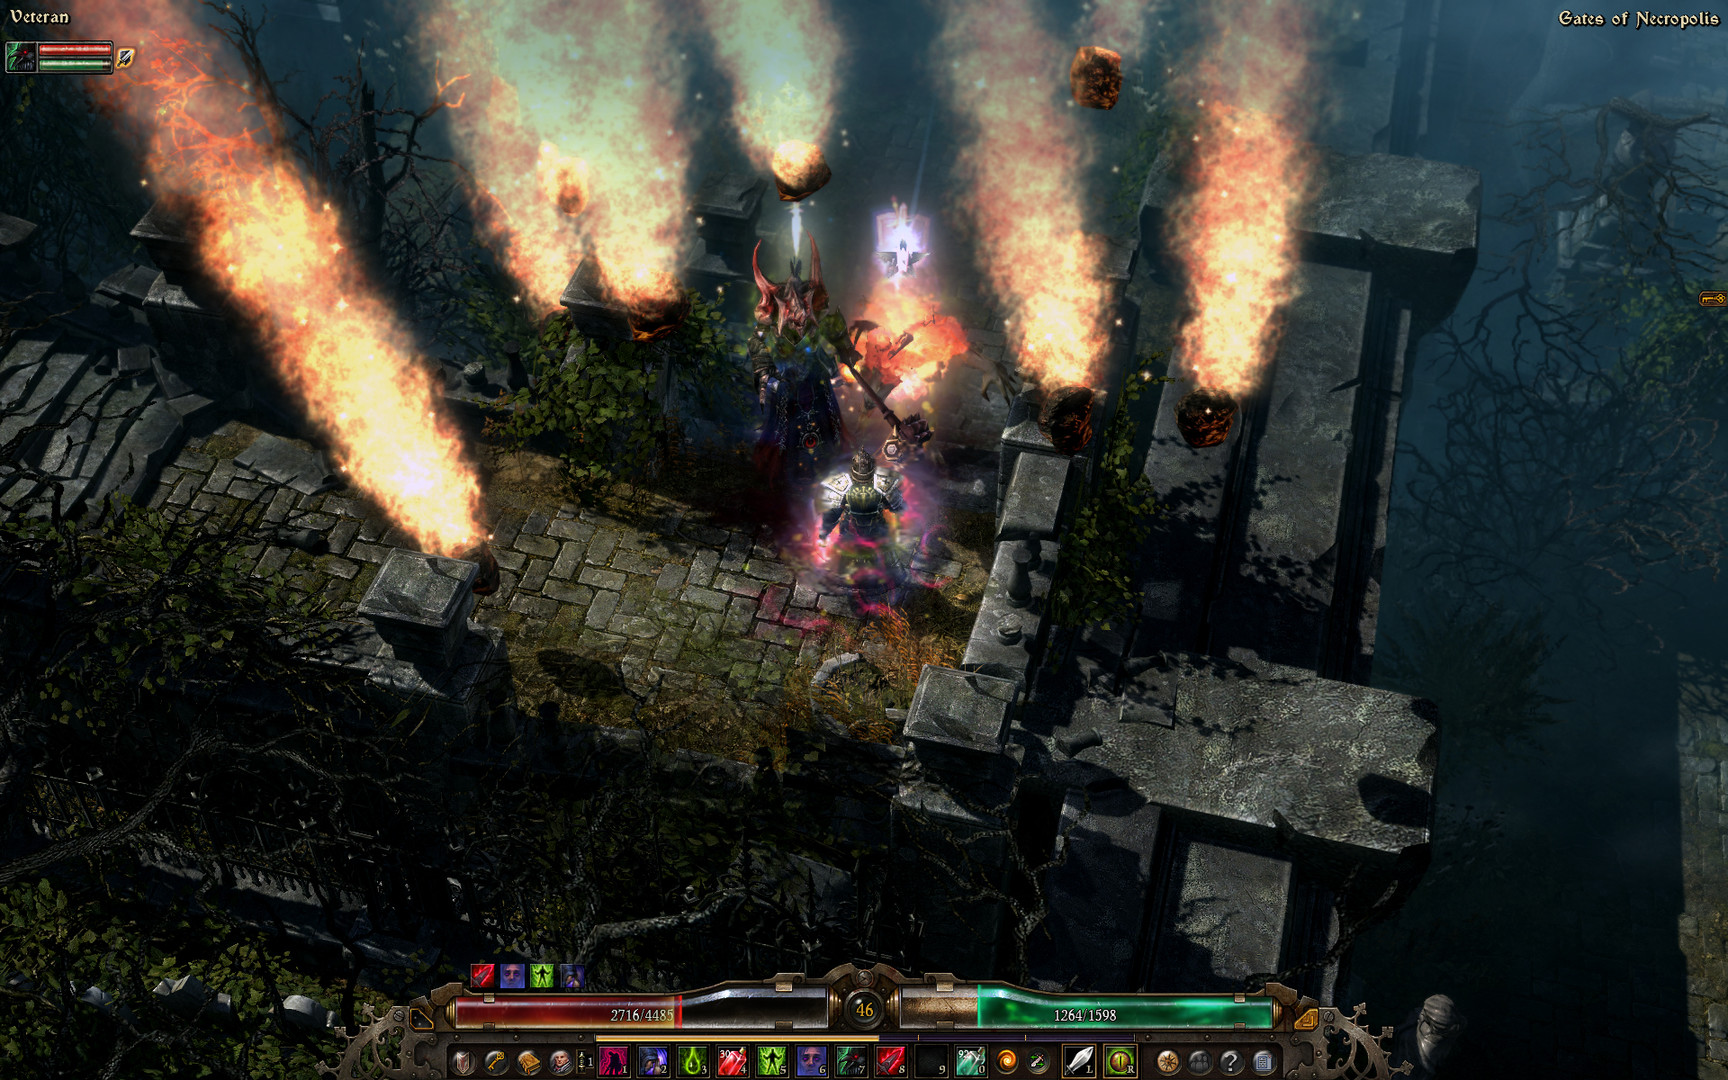 grim dawn v1.0.2.1 patch download